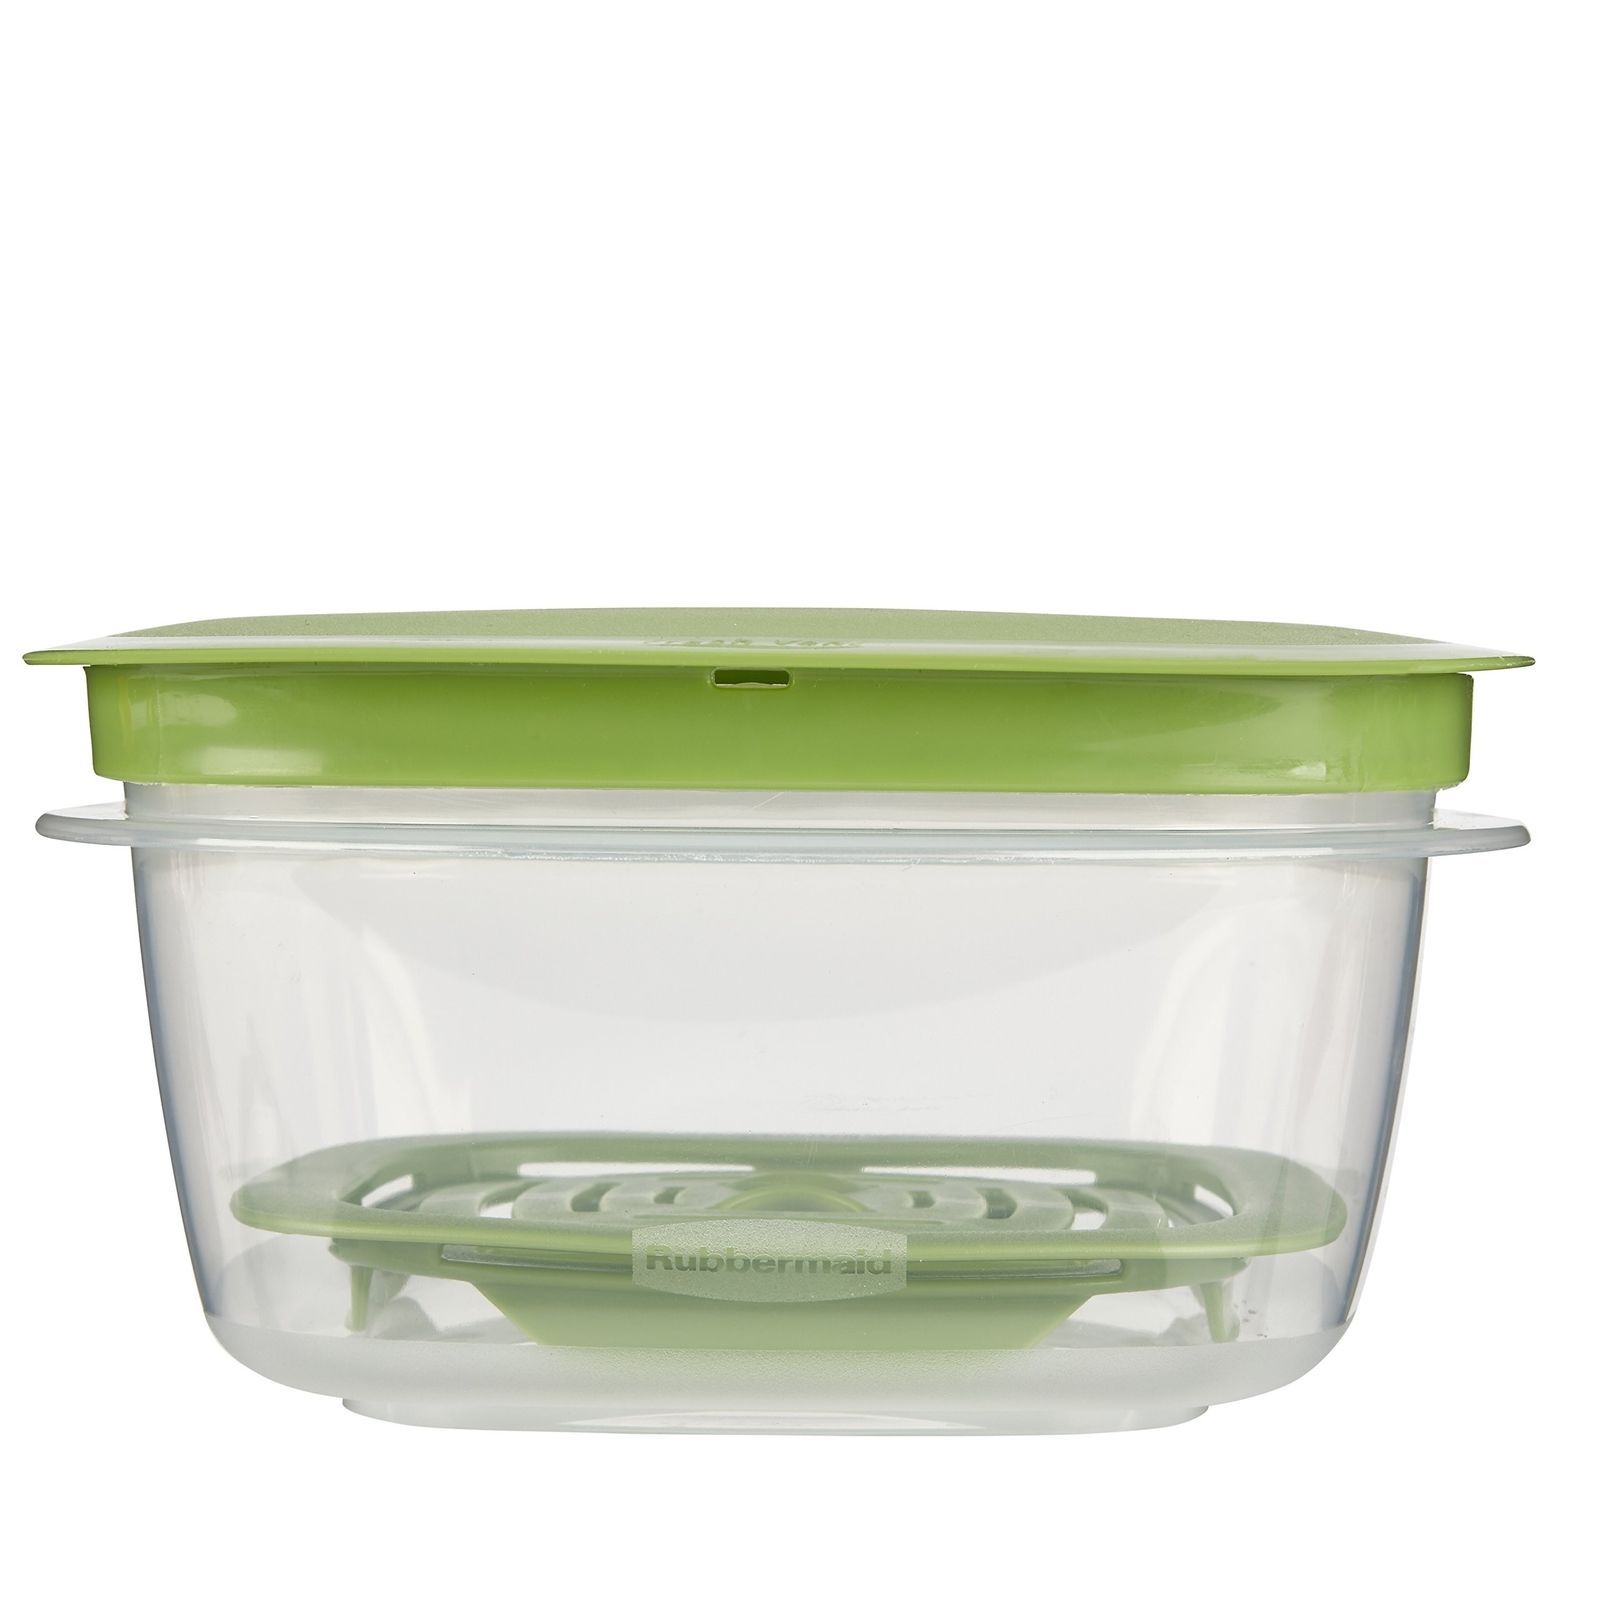 Rubbermaid Produce Saver Food Storage Container, 5-Cup 1